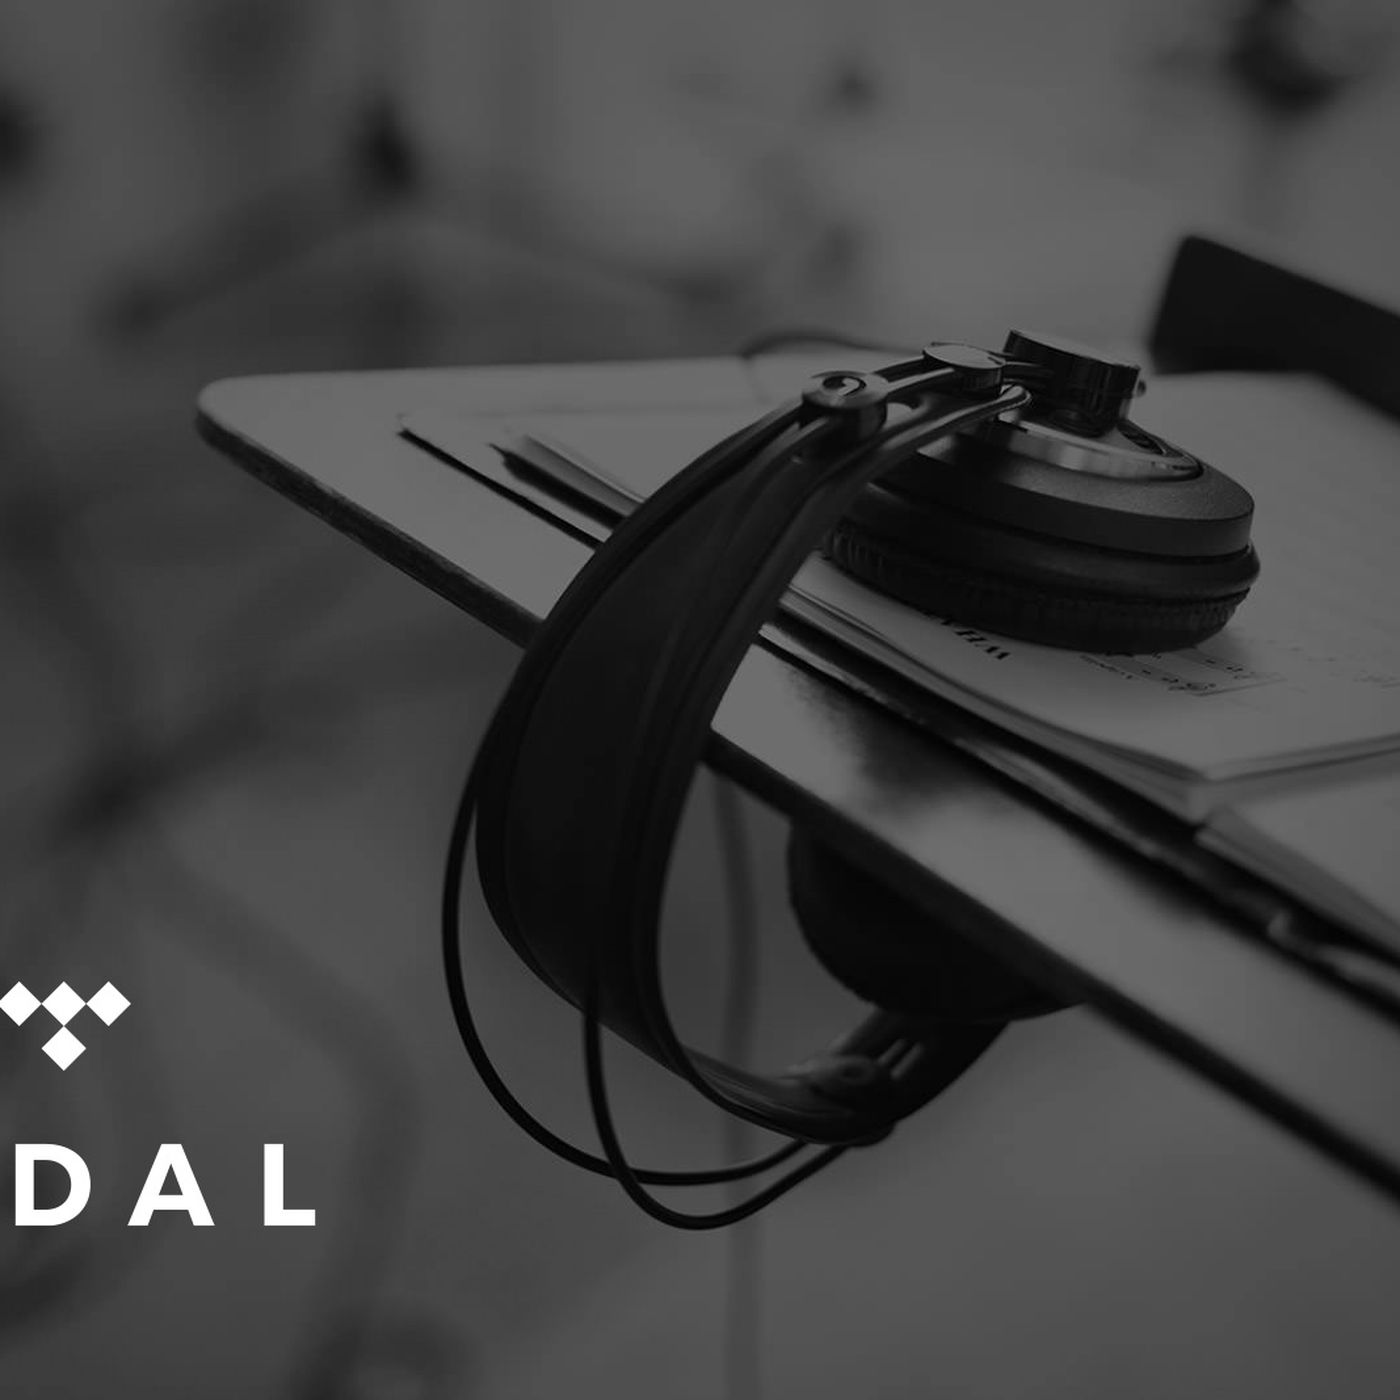 Tidal will make 'Master' quality recordings available to its